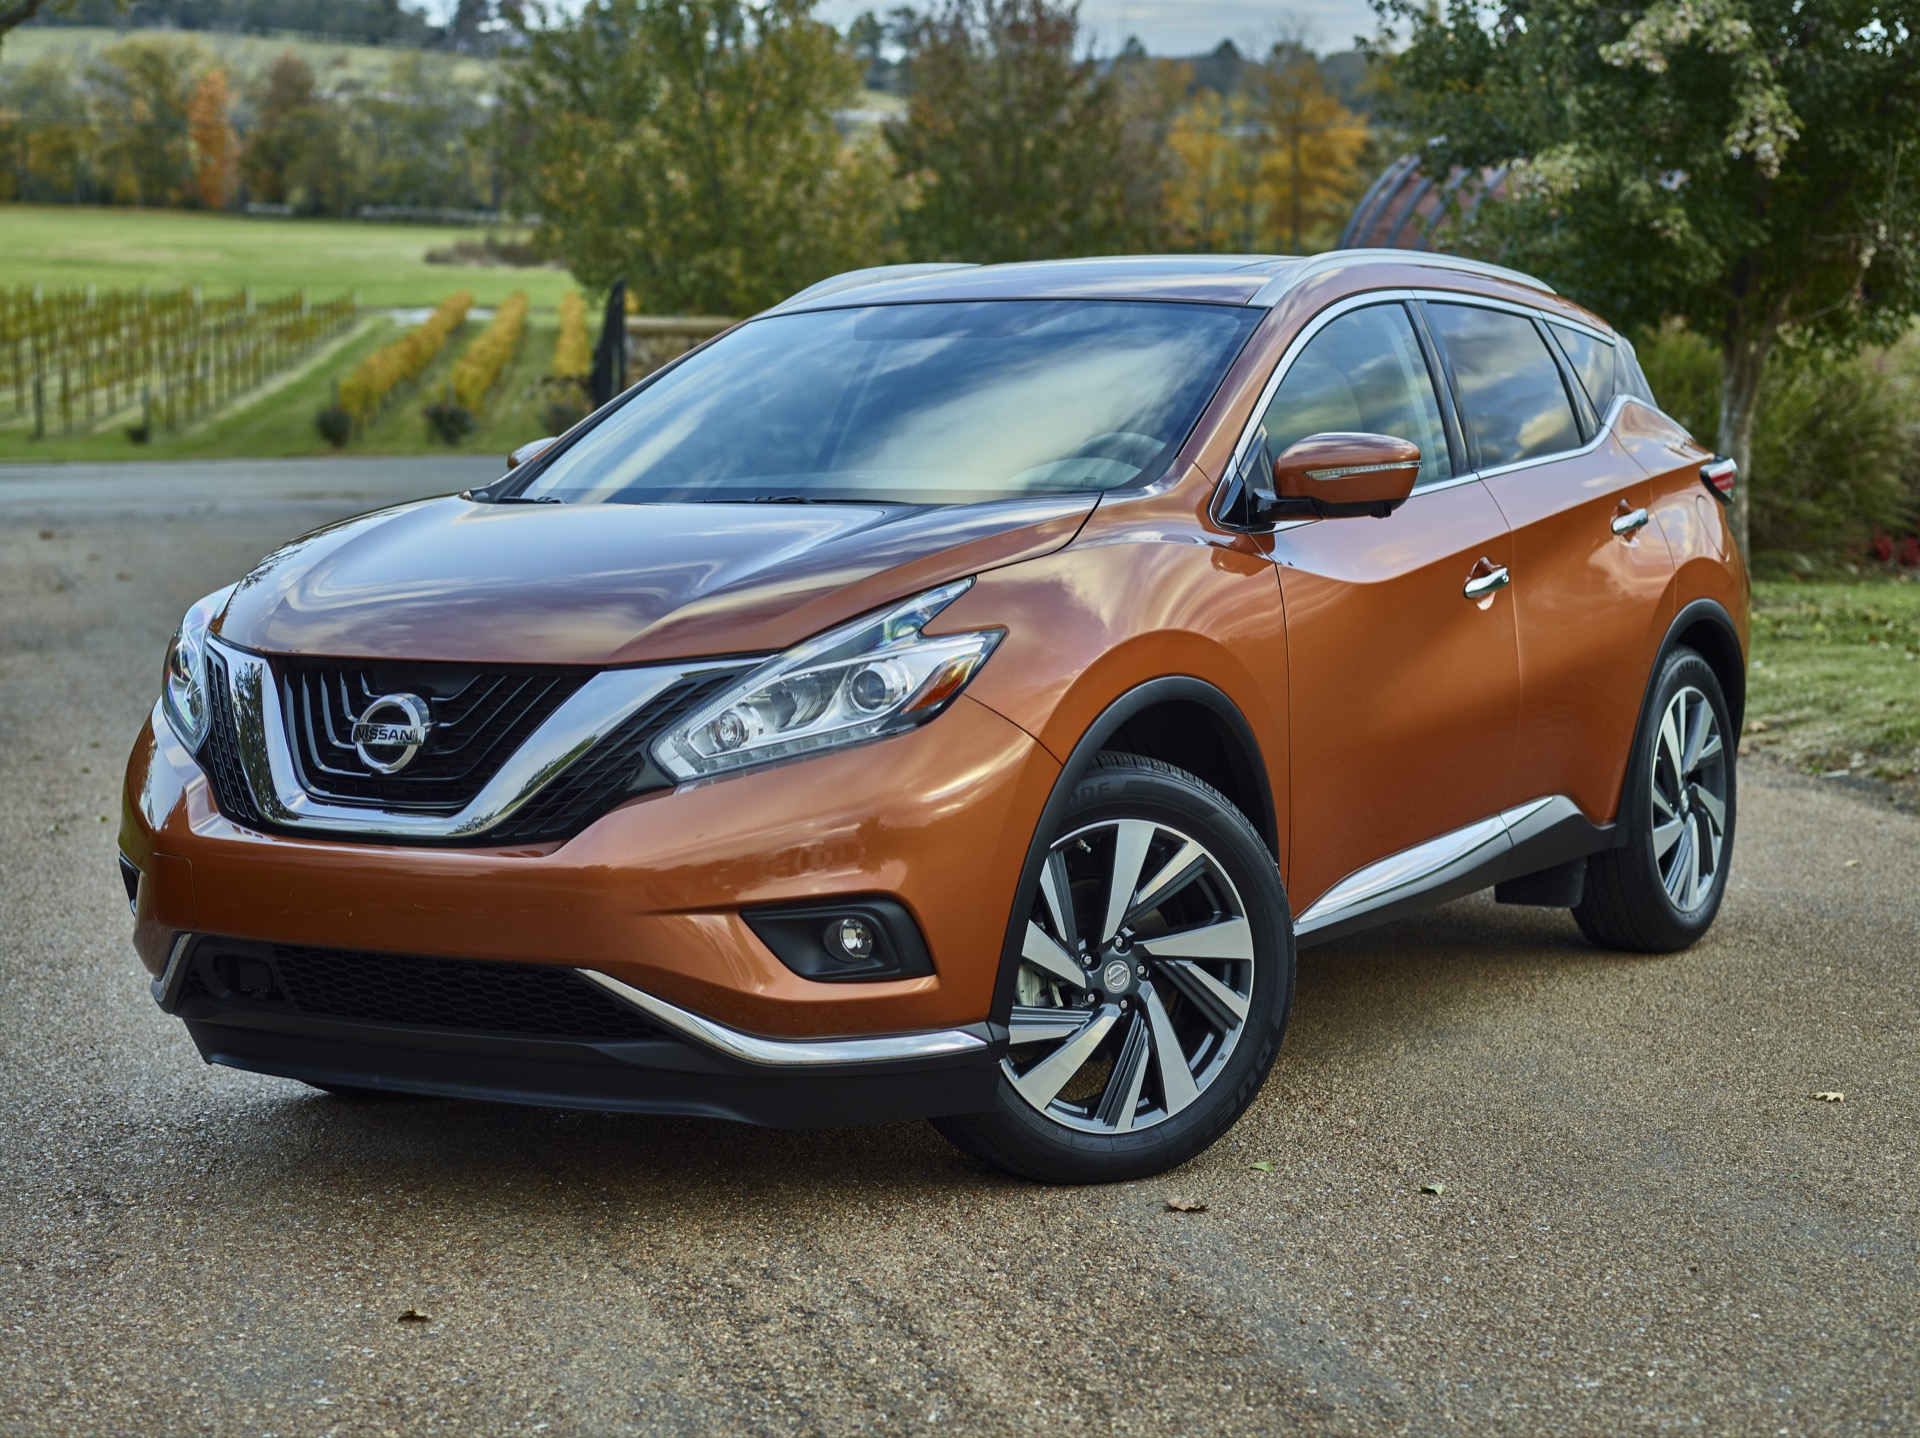 2015 nissan murano gets real mpg new cars inc. Black Bedroom Furniture Sets. Home Design Ideas